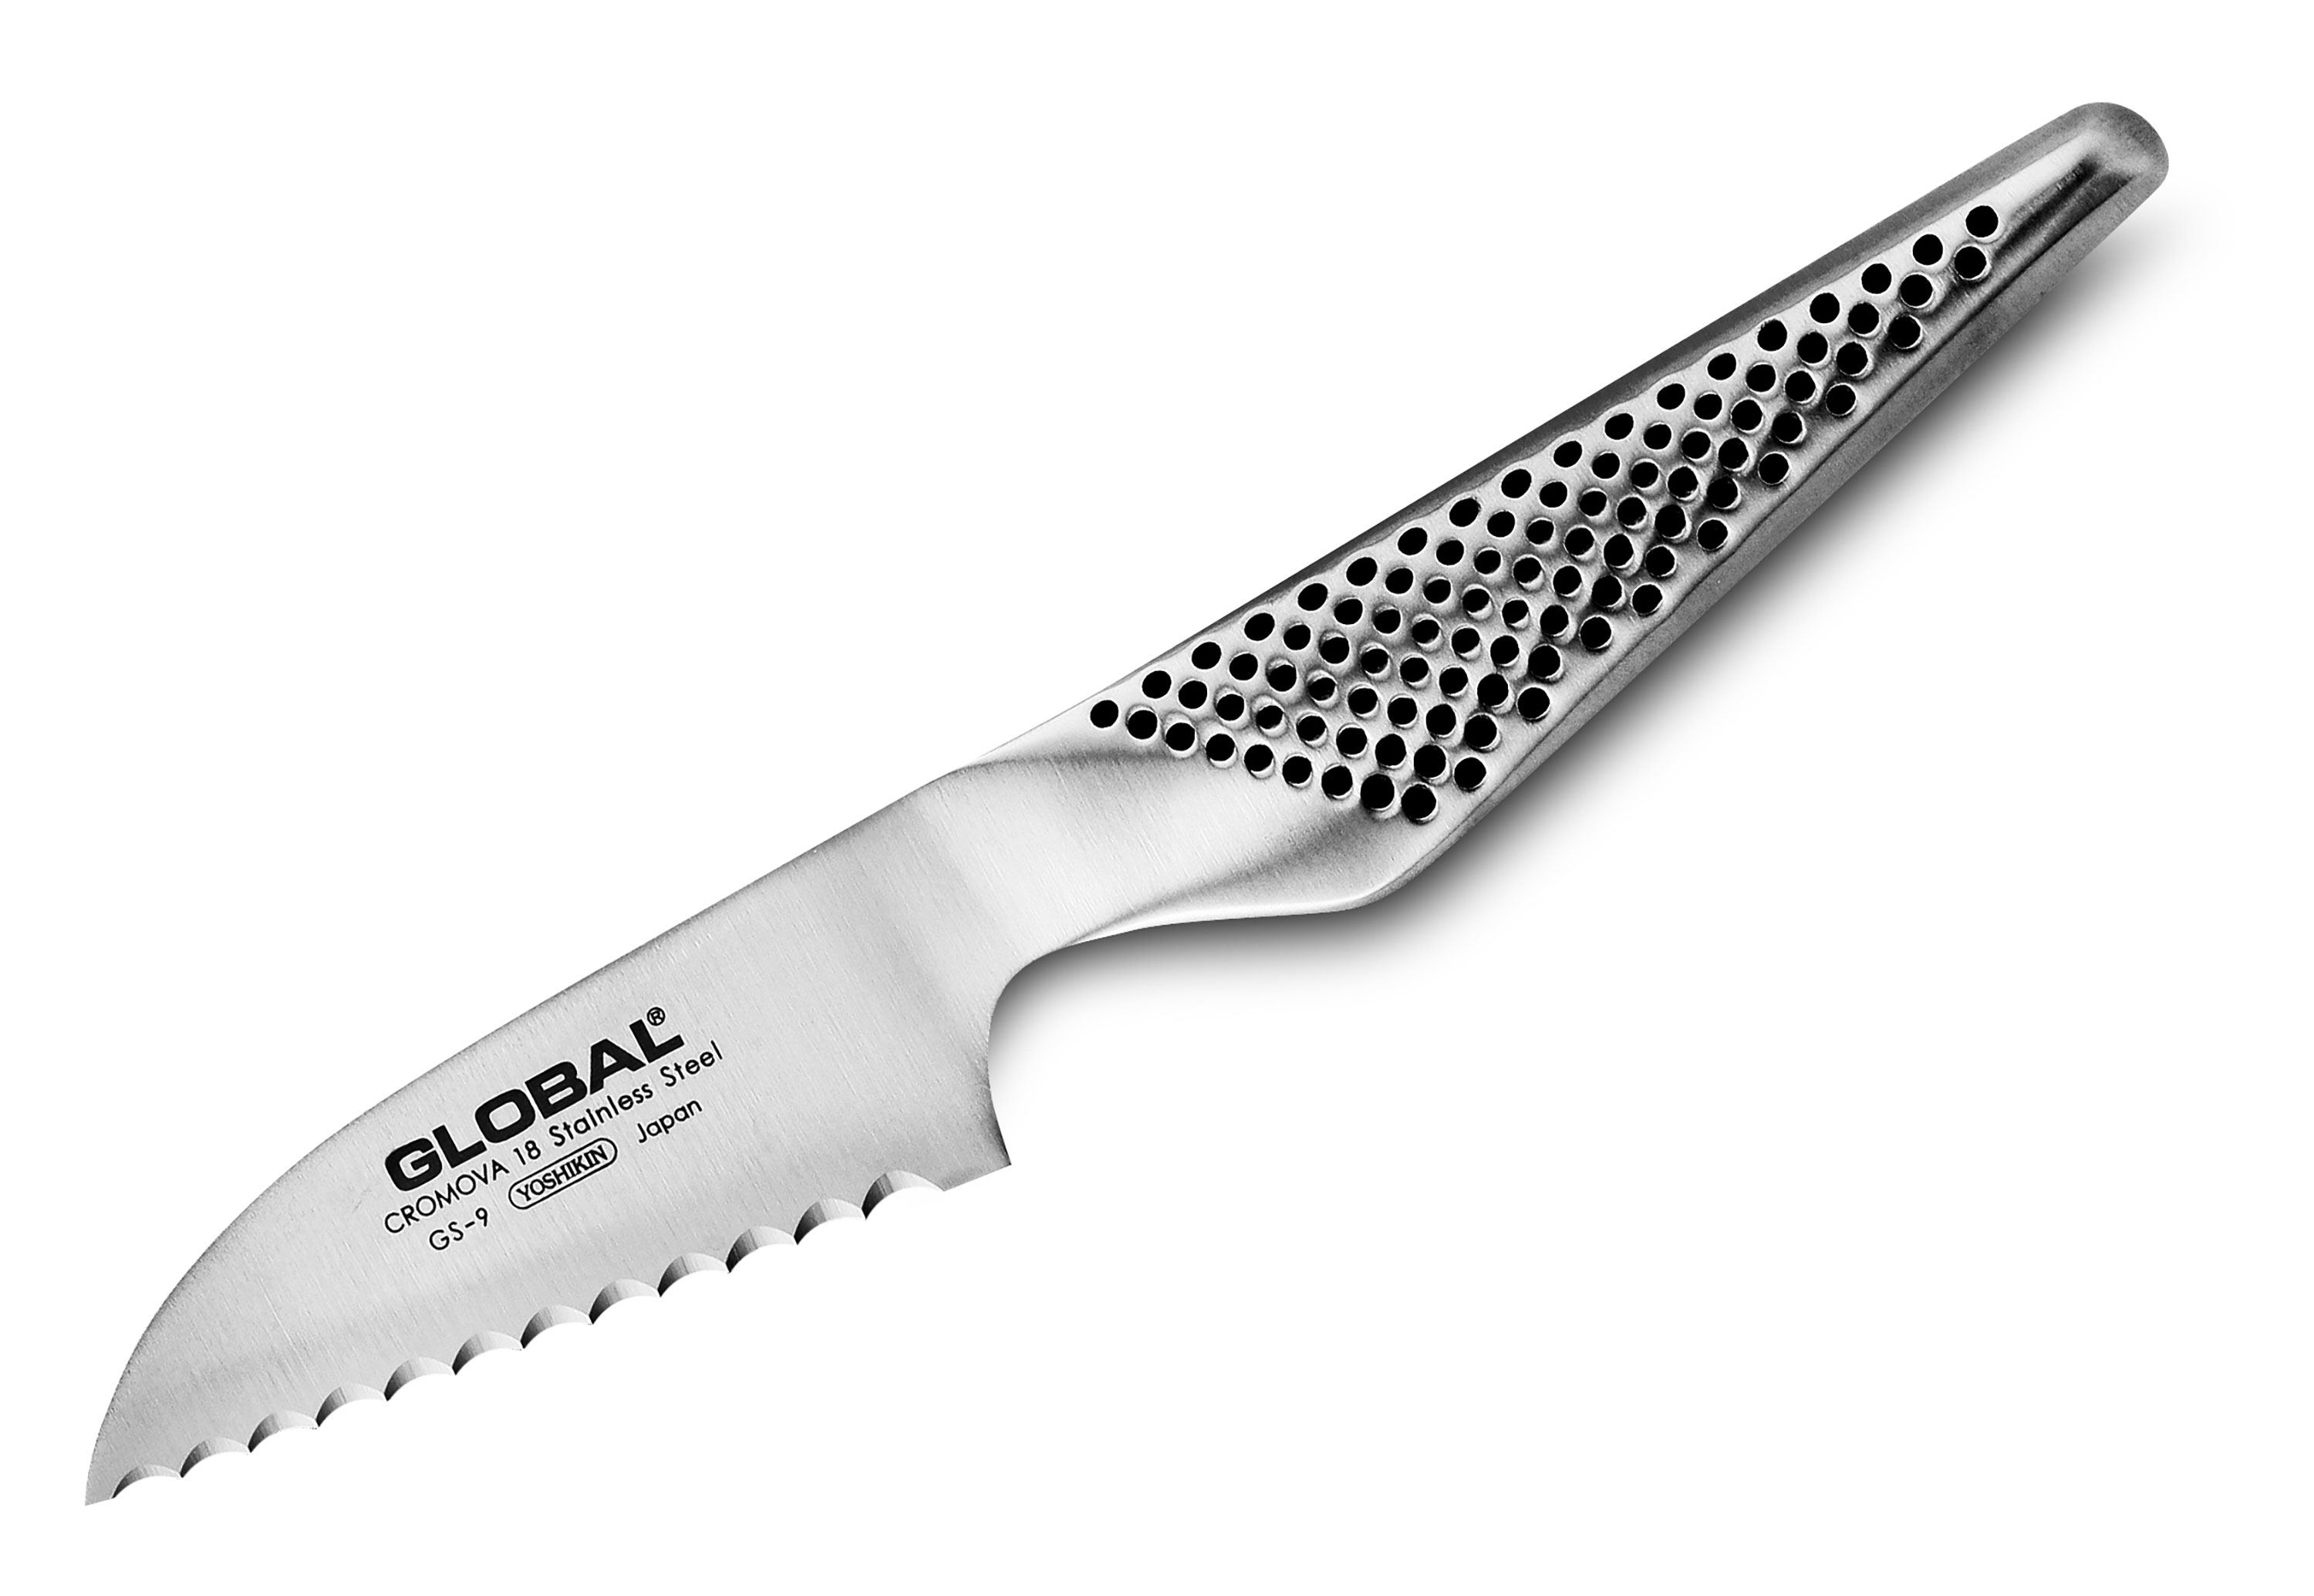 Global Serrated Paring Knife 3 Quot Cutlery And More